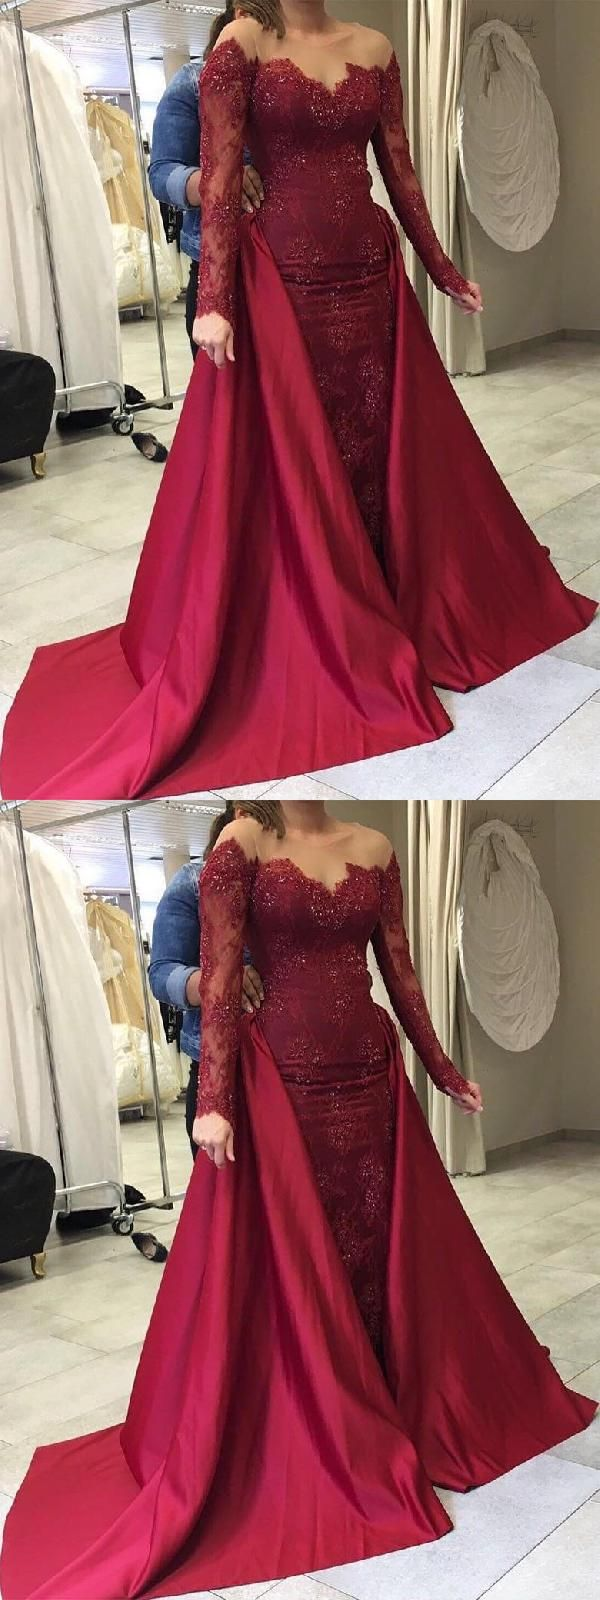 Outlet Enticing Prom Dresses Lace Prom Dresses Prom Dresses